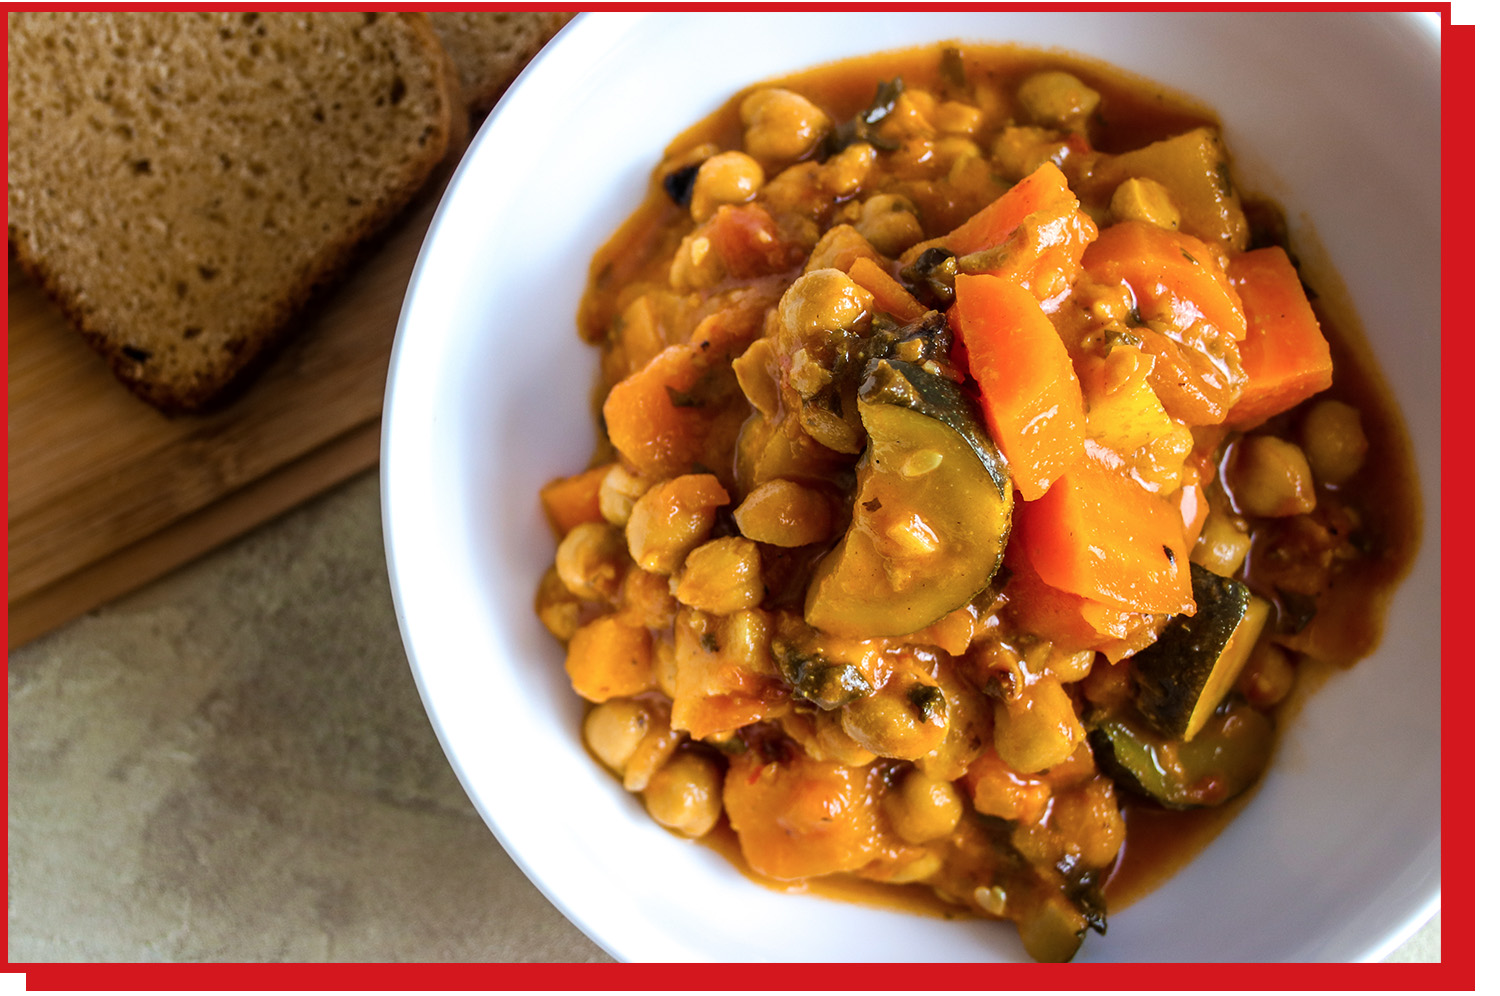 Bowl of chickpea and sweet potato stew in a white bowl.